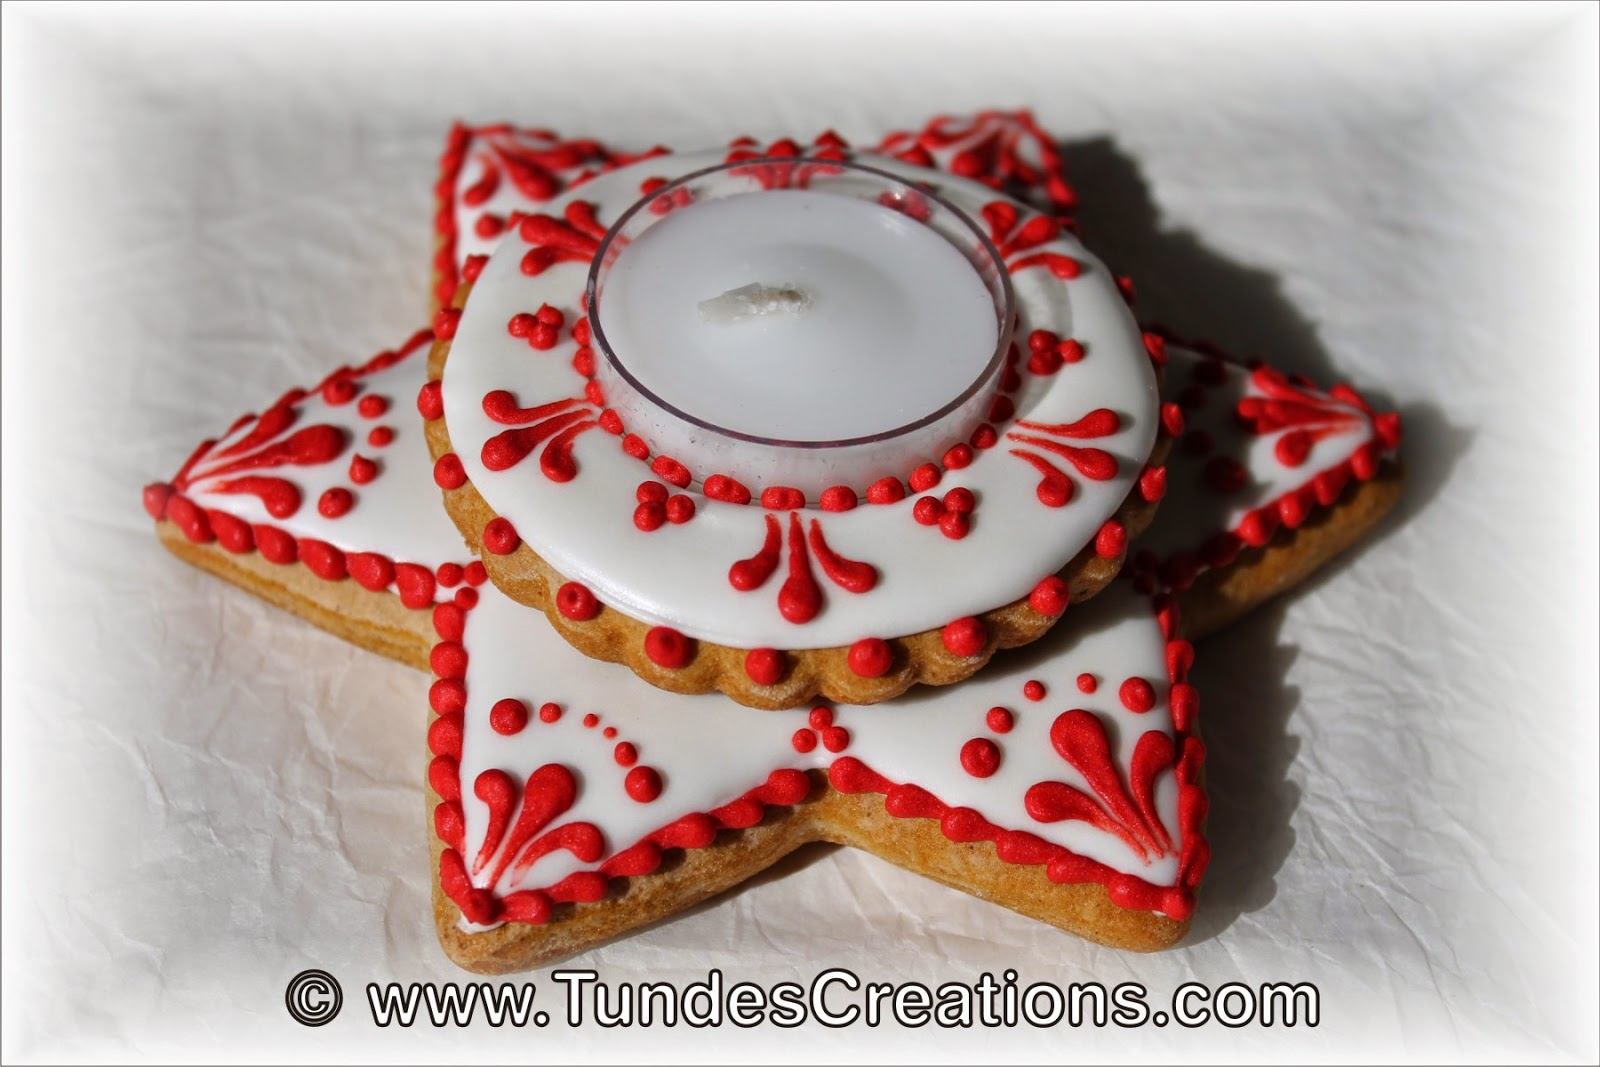 Red and white Gingerbread Christmas candle holder